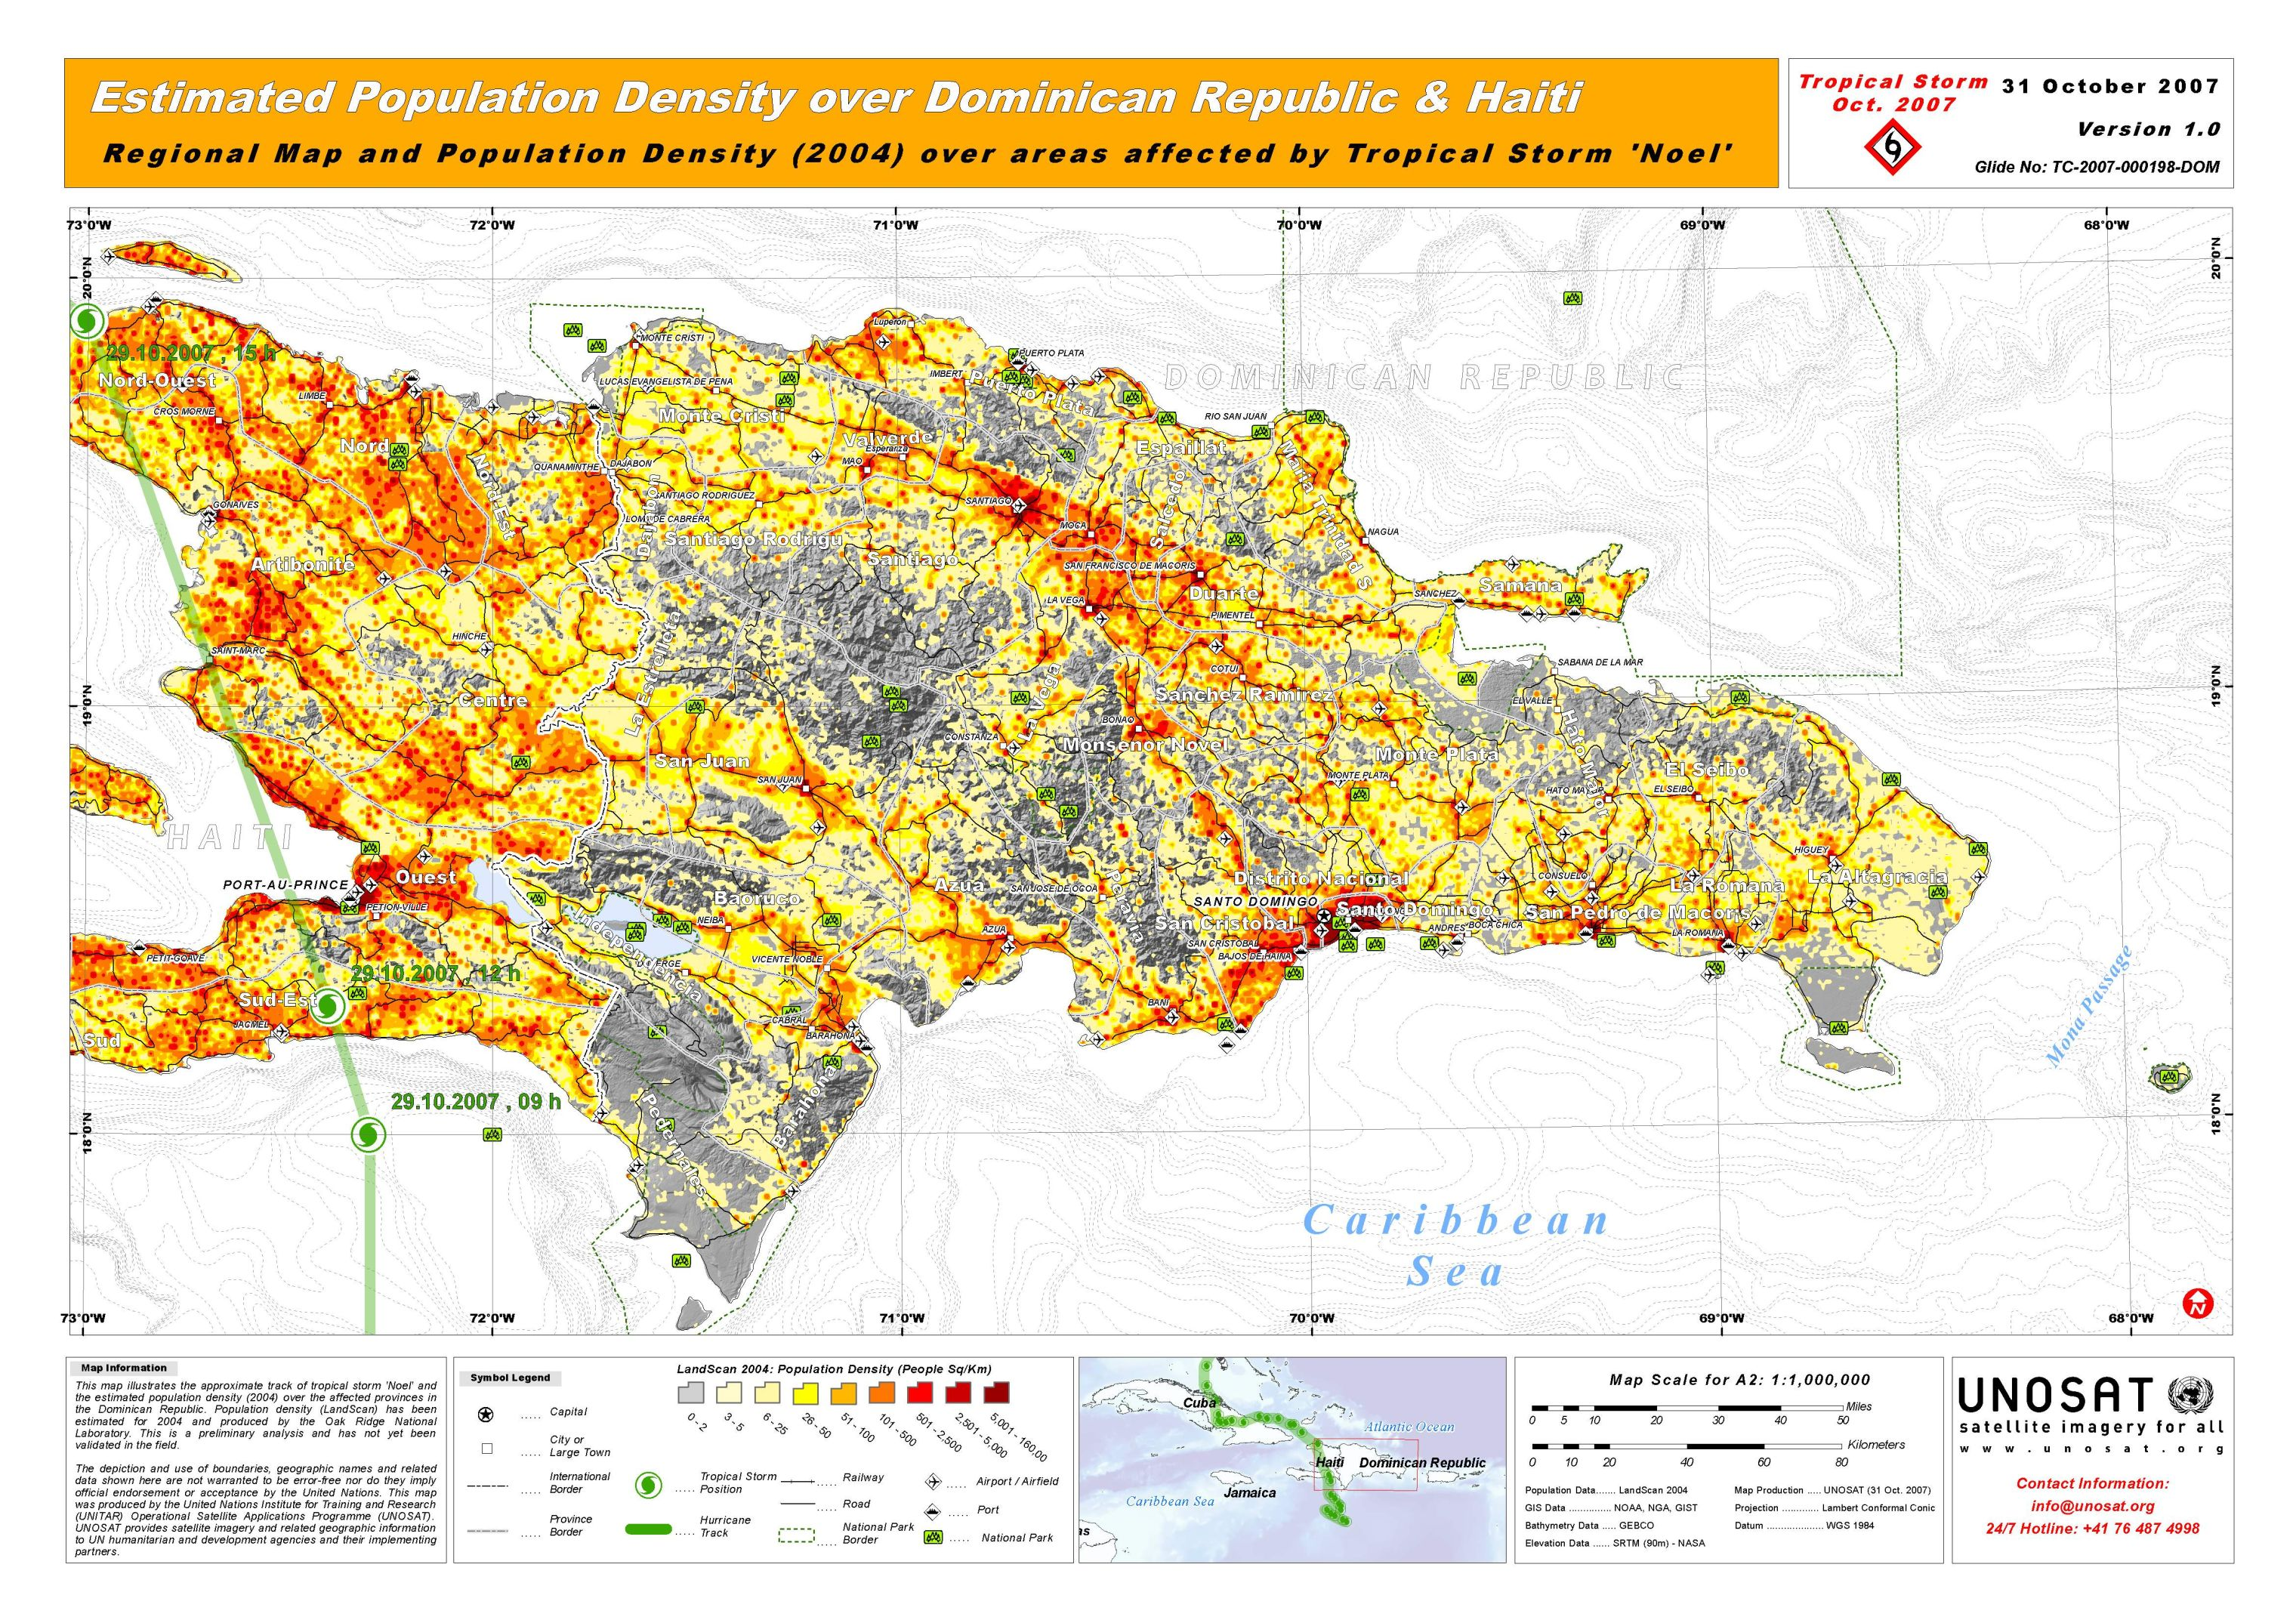 Estimated population density over dominican republic haiti unitar pdf 15mb gumiabroncs Choice Image